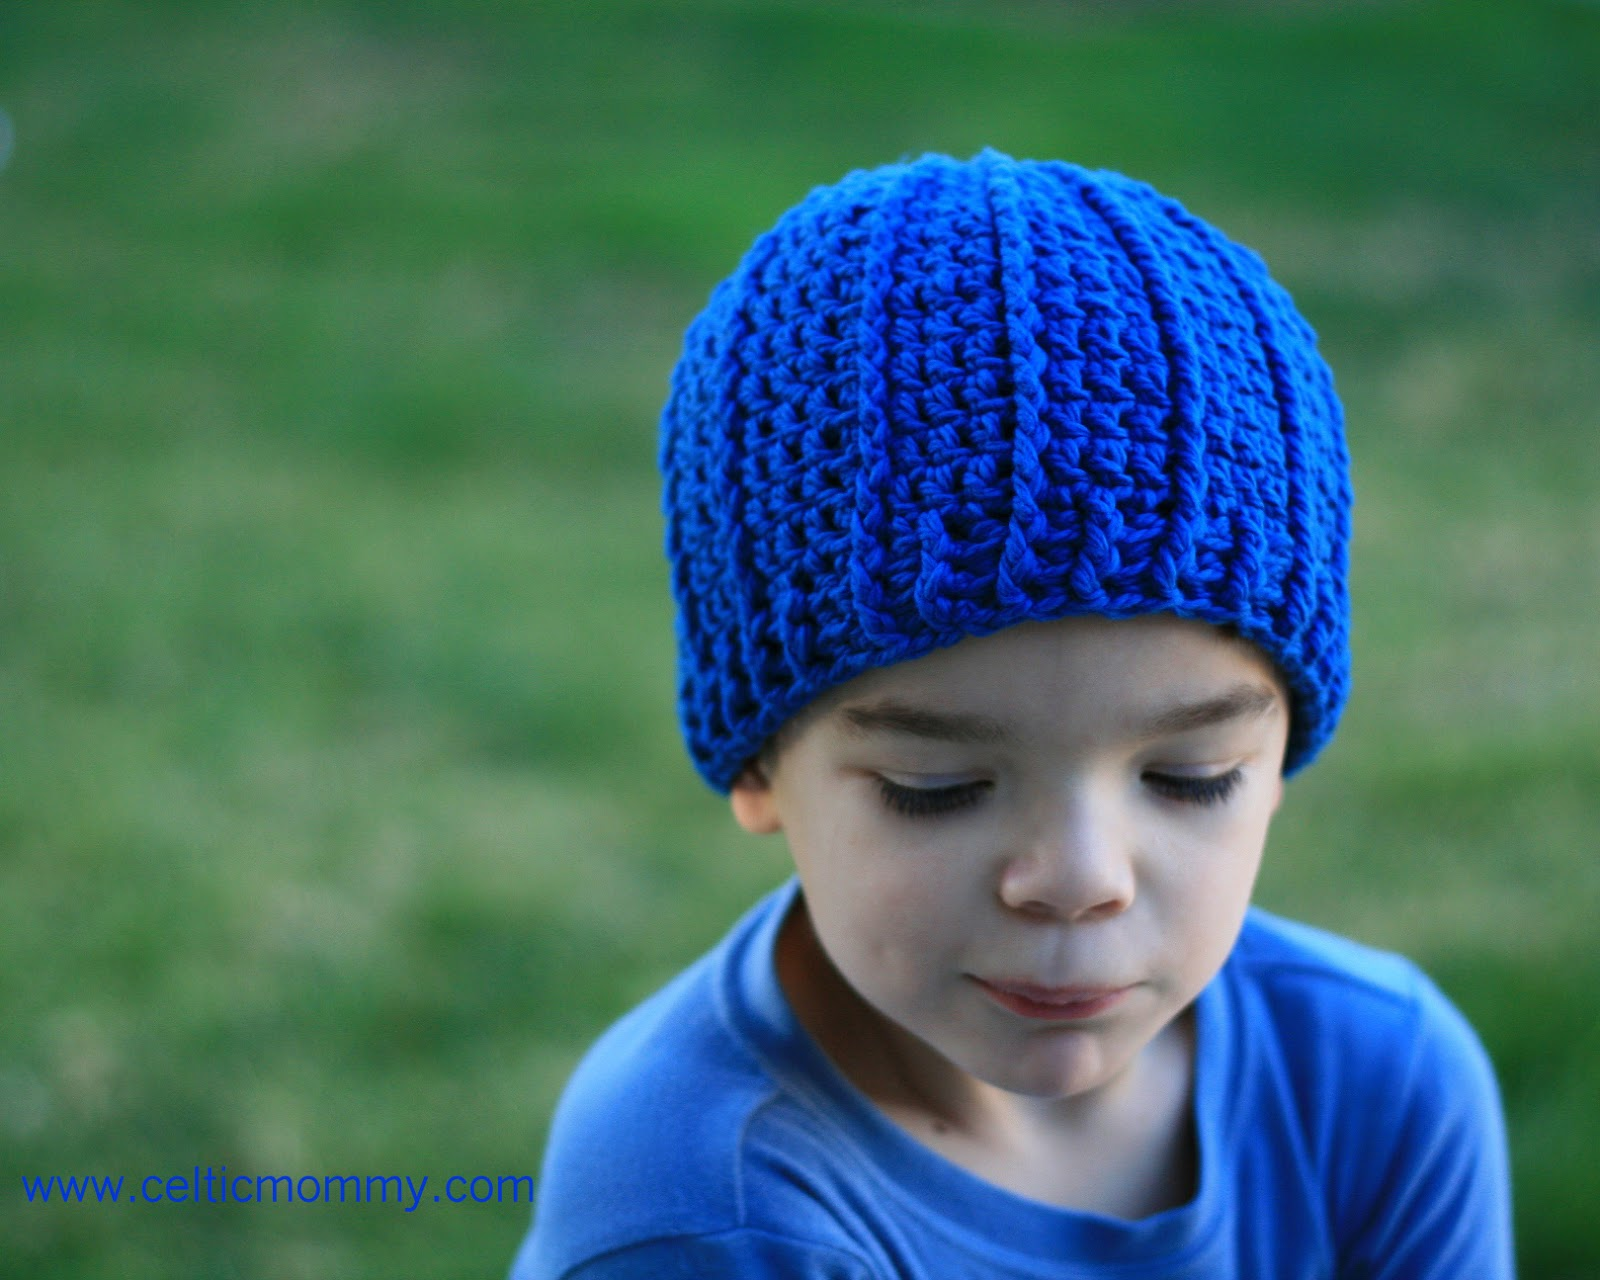 FREE CROCHET TODDLER HAT PATTERNS Crochet Tutorials